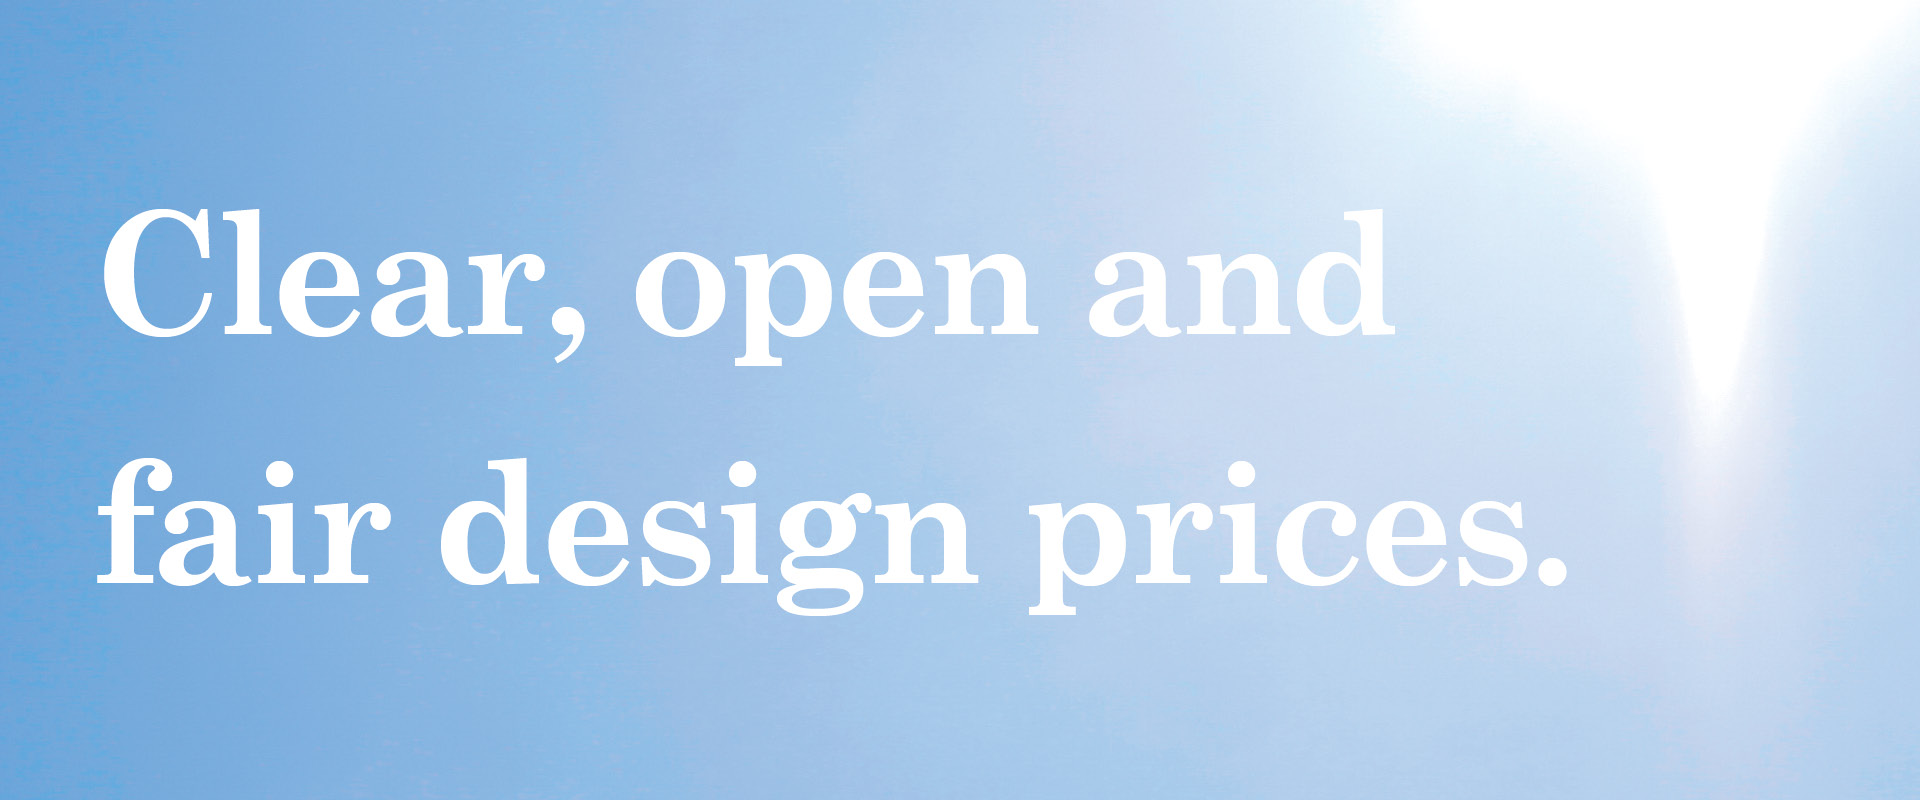 clear_open_fair_design_prices.jpg